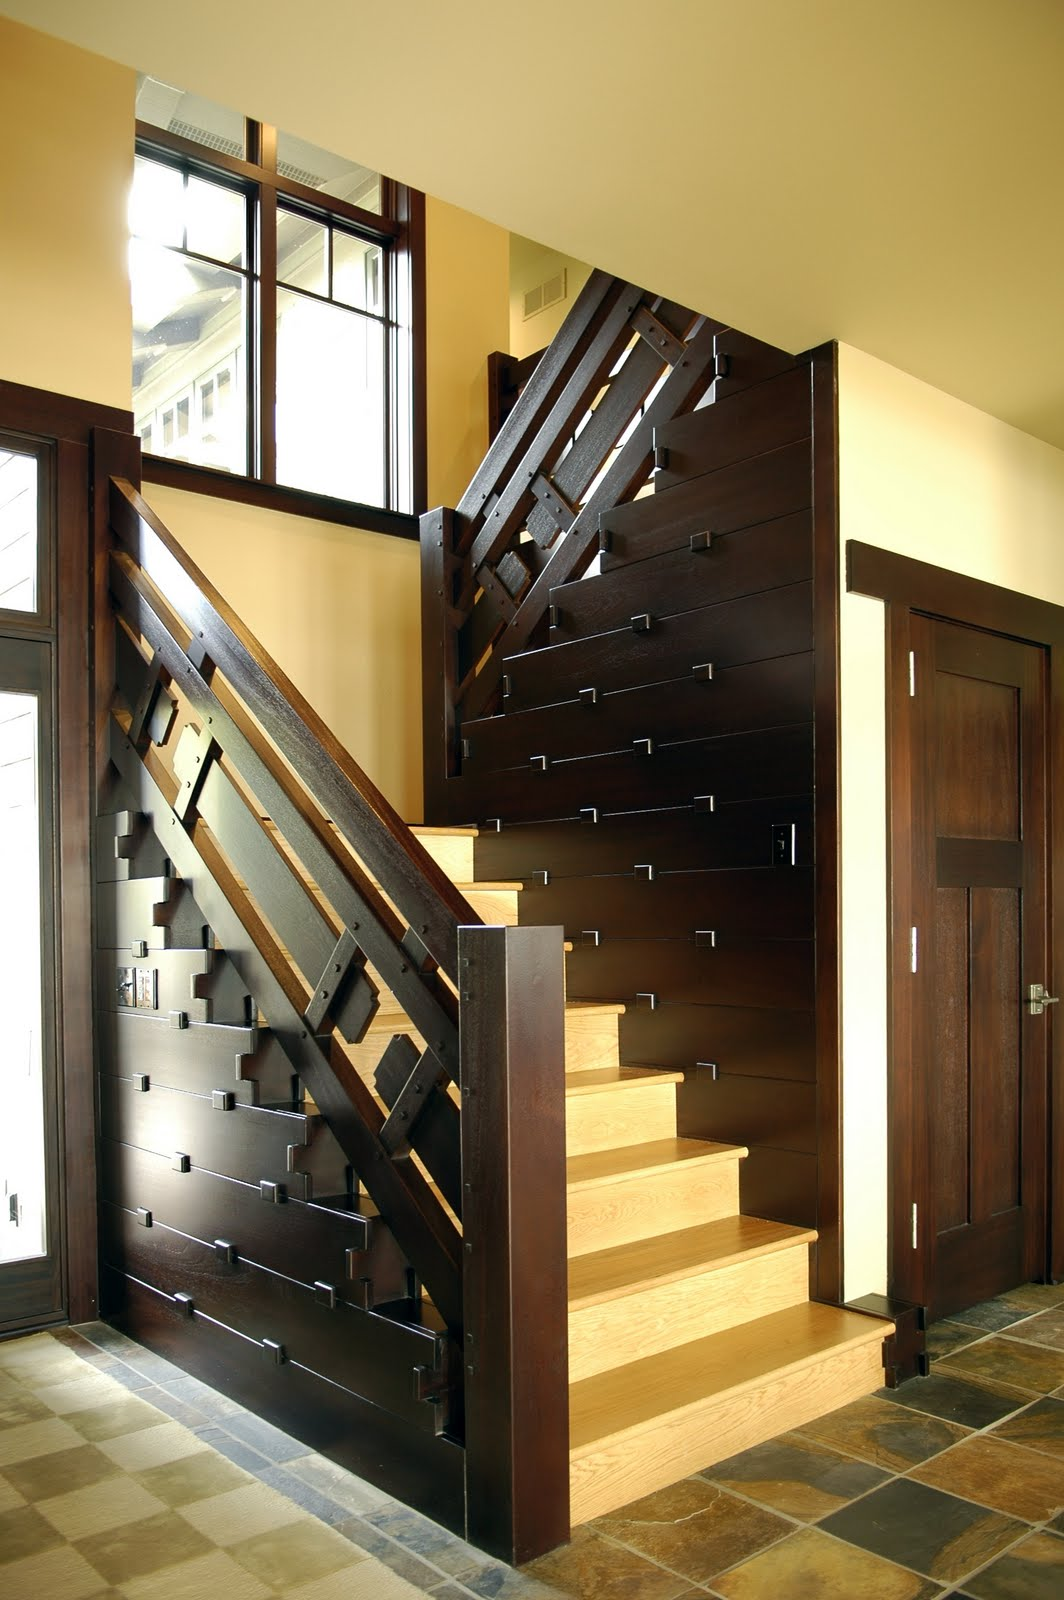 Architectural Tutorial: Stairs   Visbeen Architects on home bookcase design, home trim design, home balcony design, home steel design, home bridge design, home corridor design, home stage design, home interior design, home terrace design, home building design, home church design, home arches design, home pantry design, home wall design, home stairway design, home house design, home restaurant design, home modern design, home painting design, home column design,